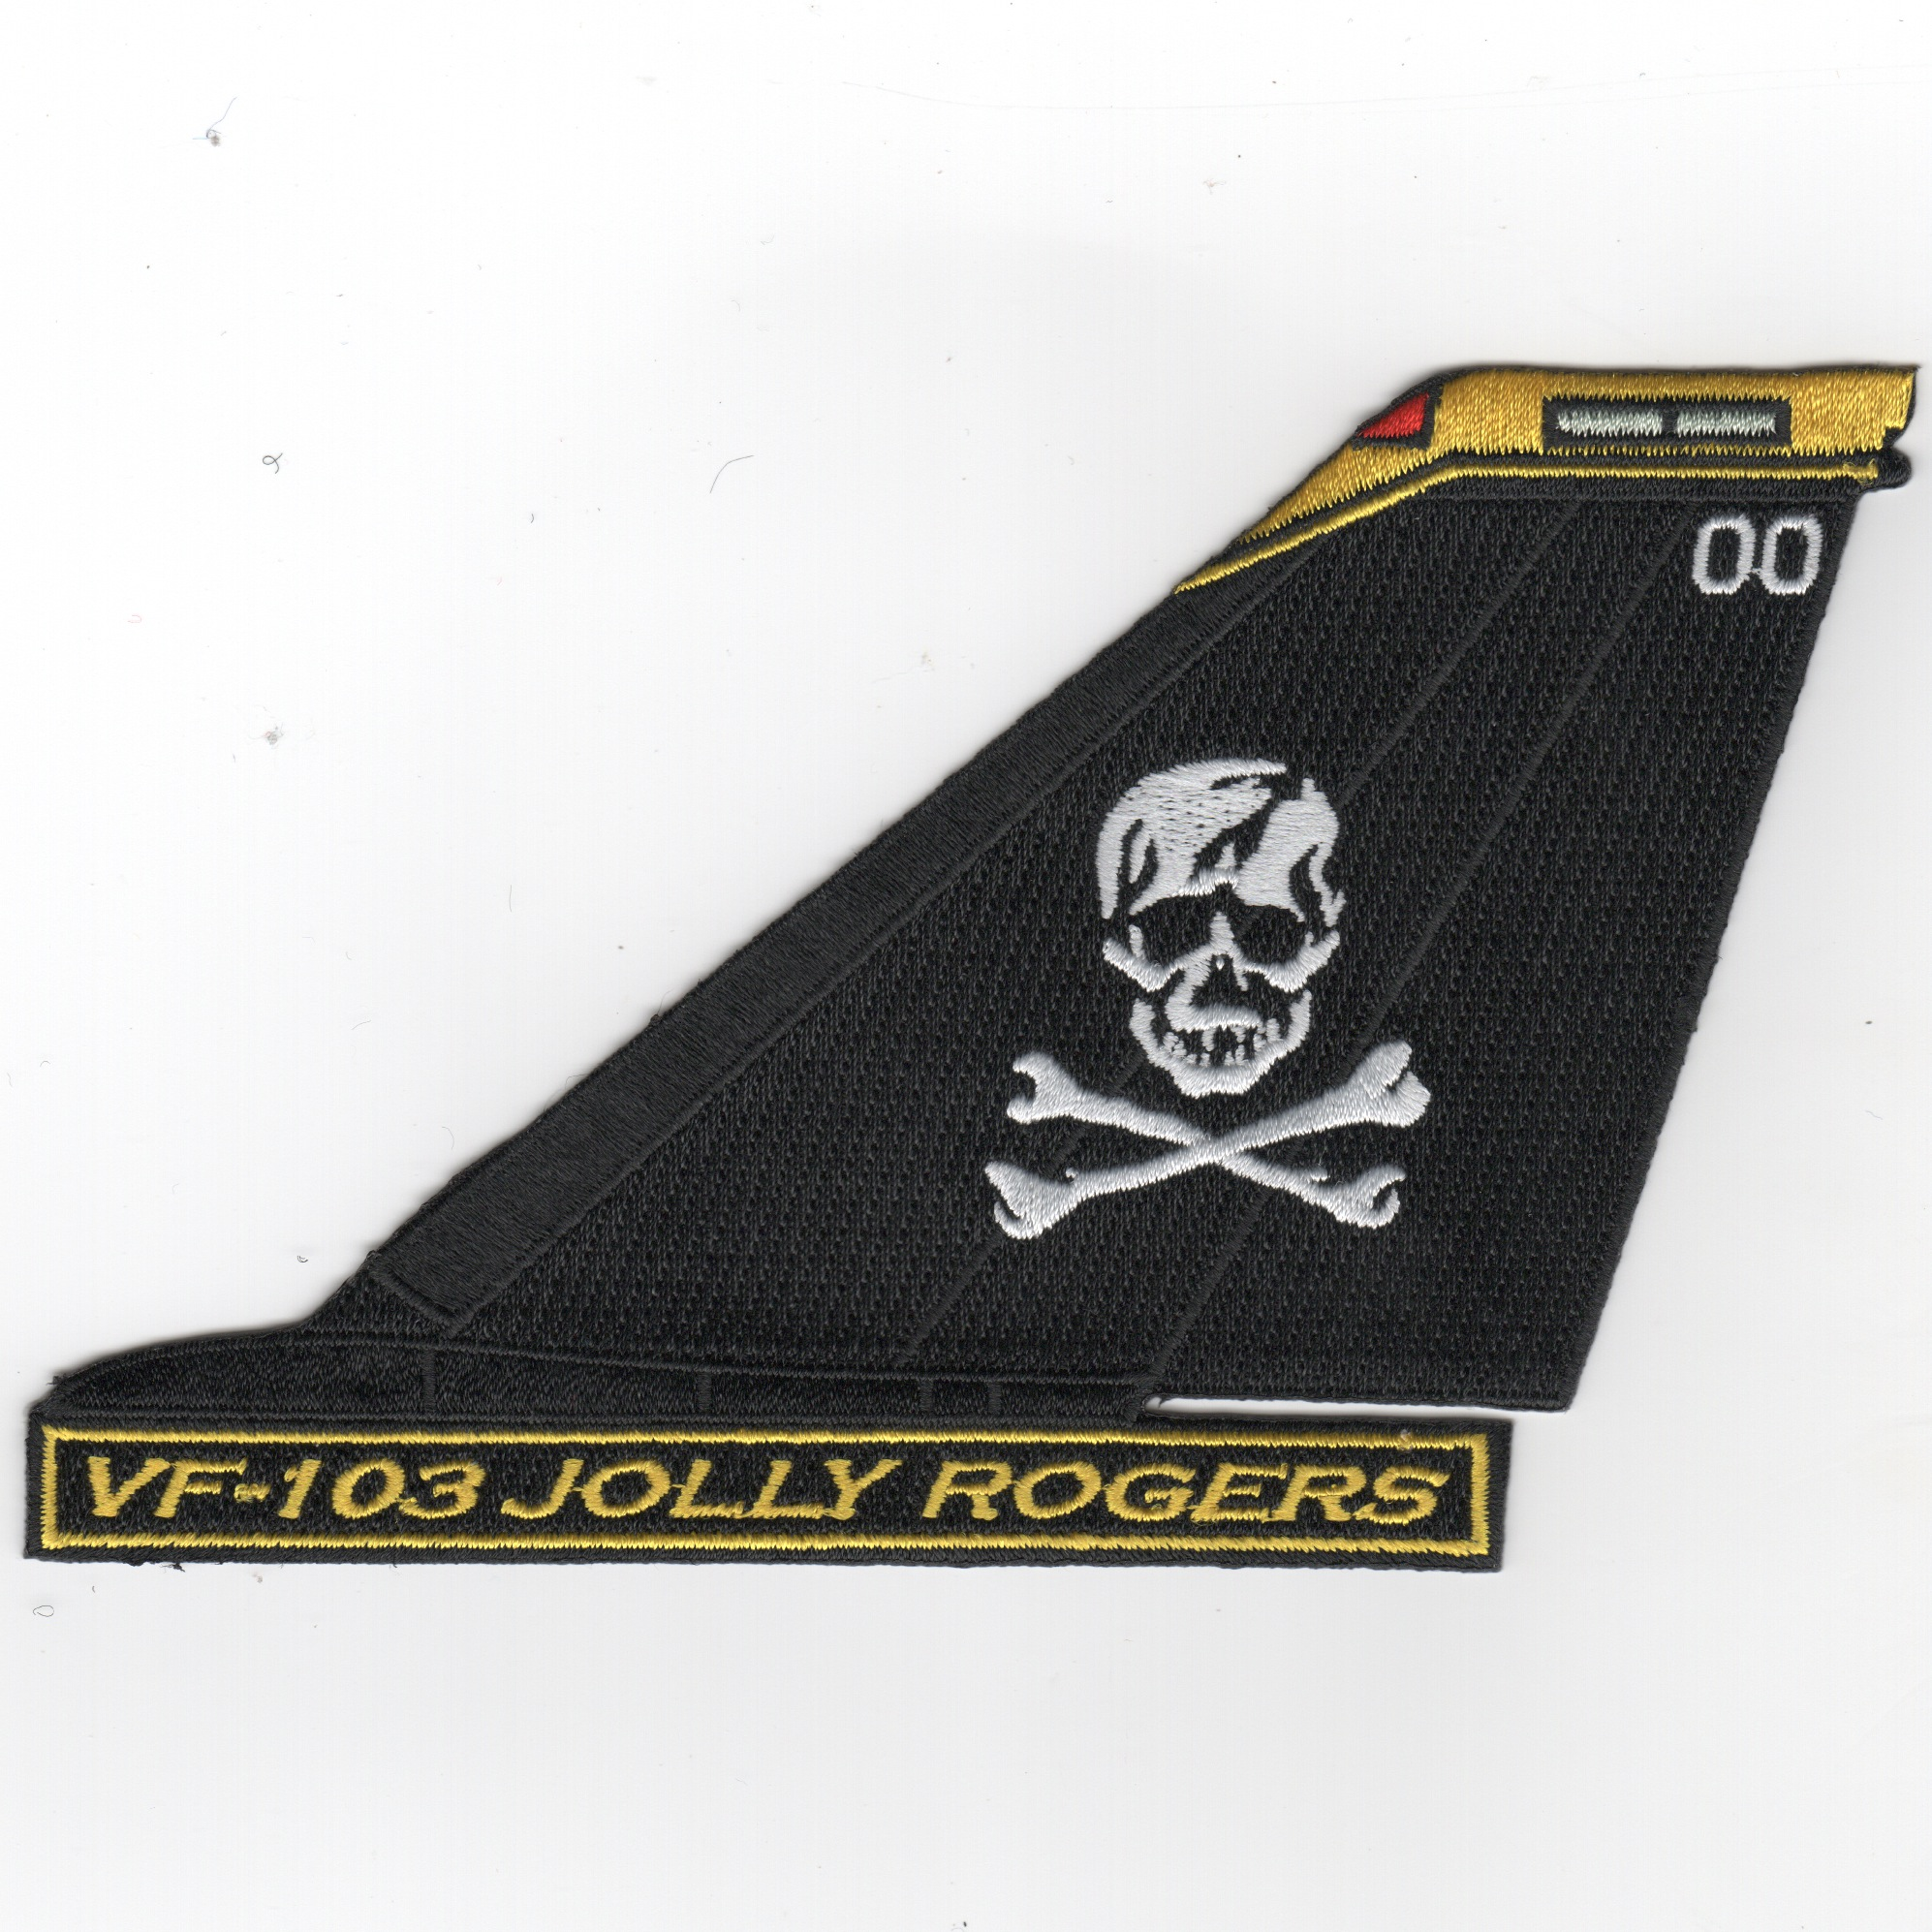 VF-103 F-14 Tailfin (Black/White Skull/Yellow Tip/Text)